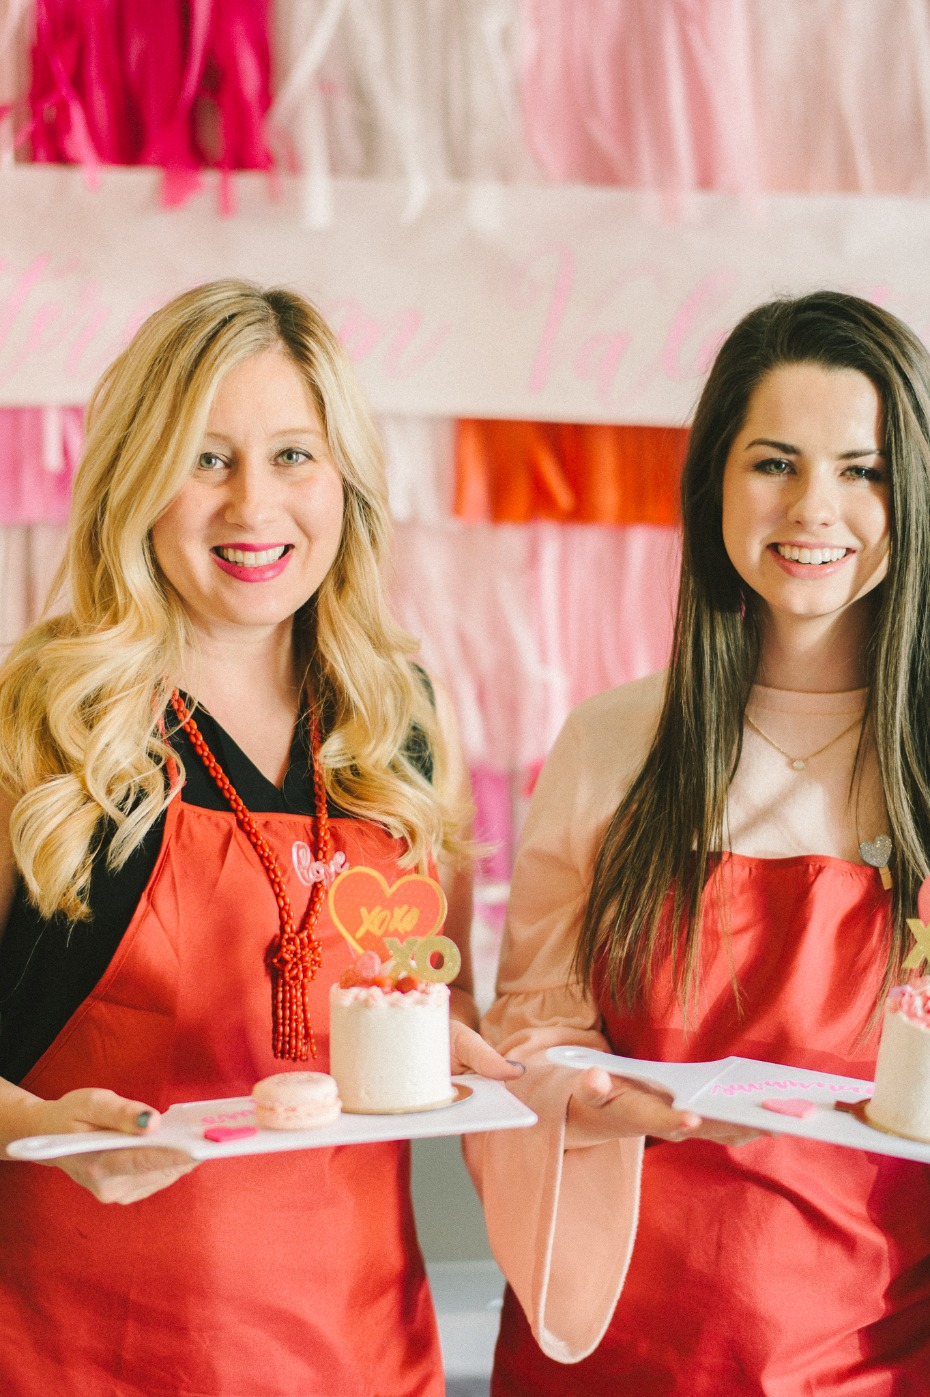 cake decorating party for your bridal shower